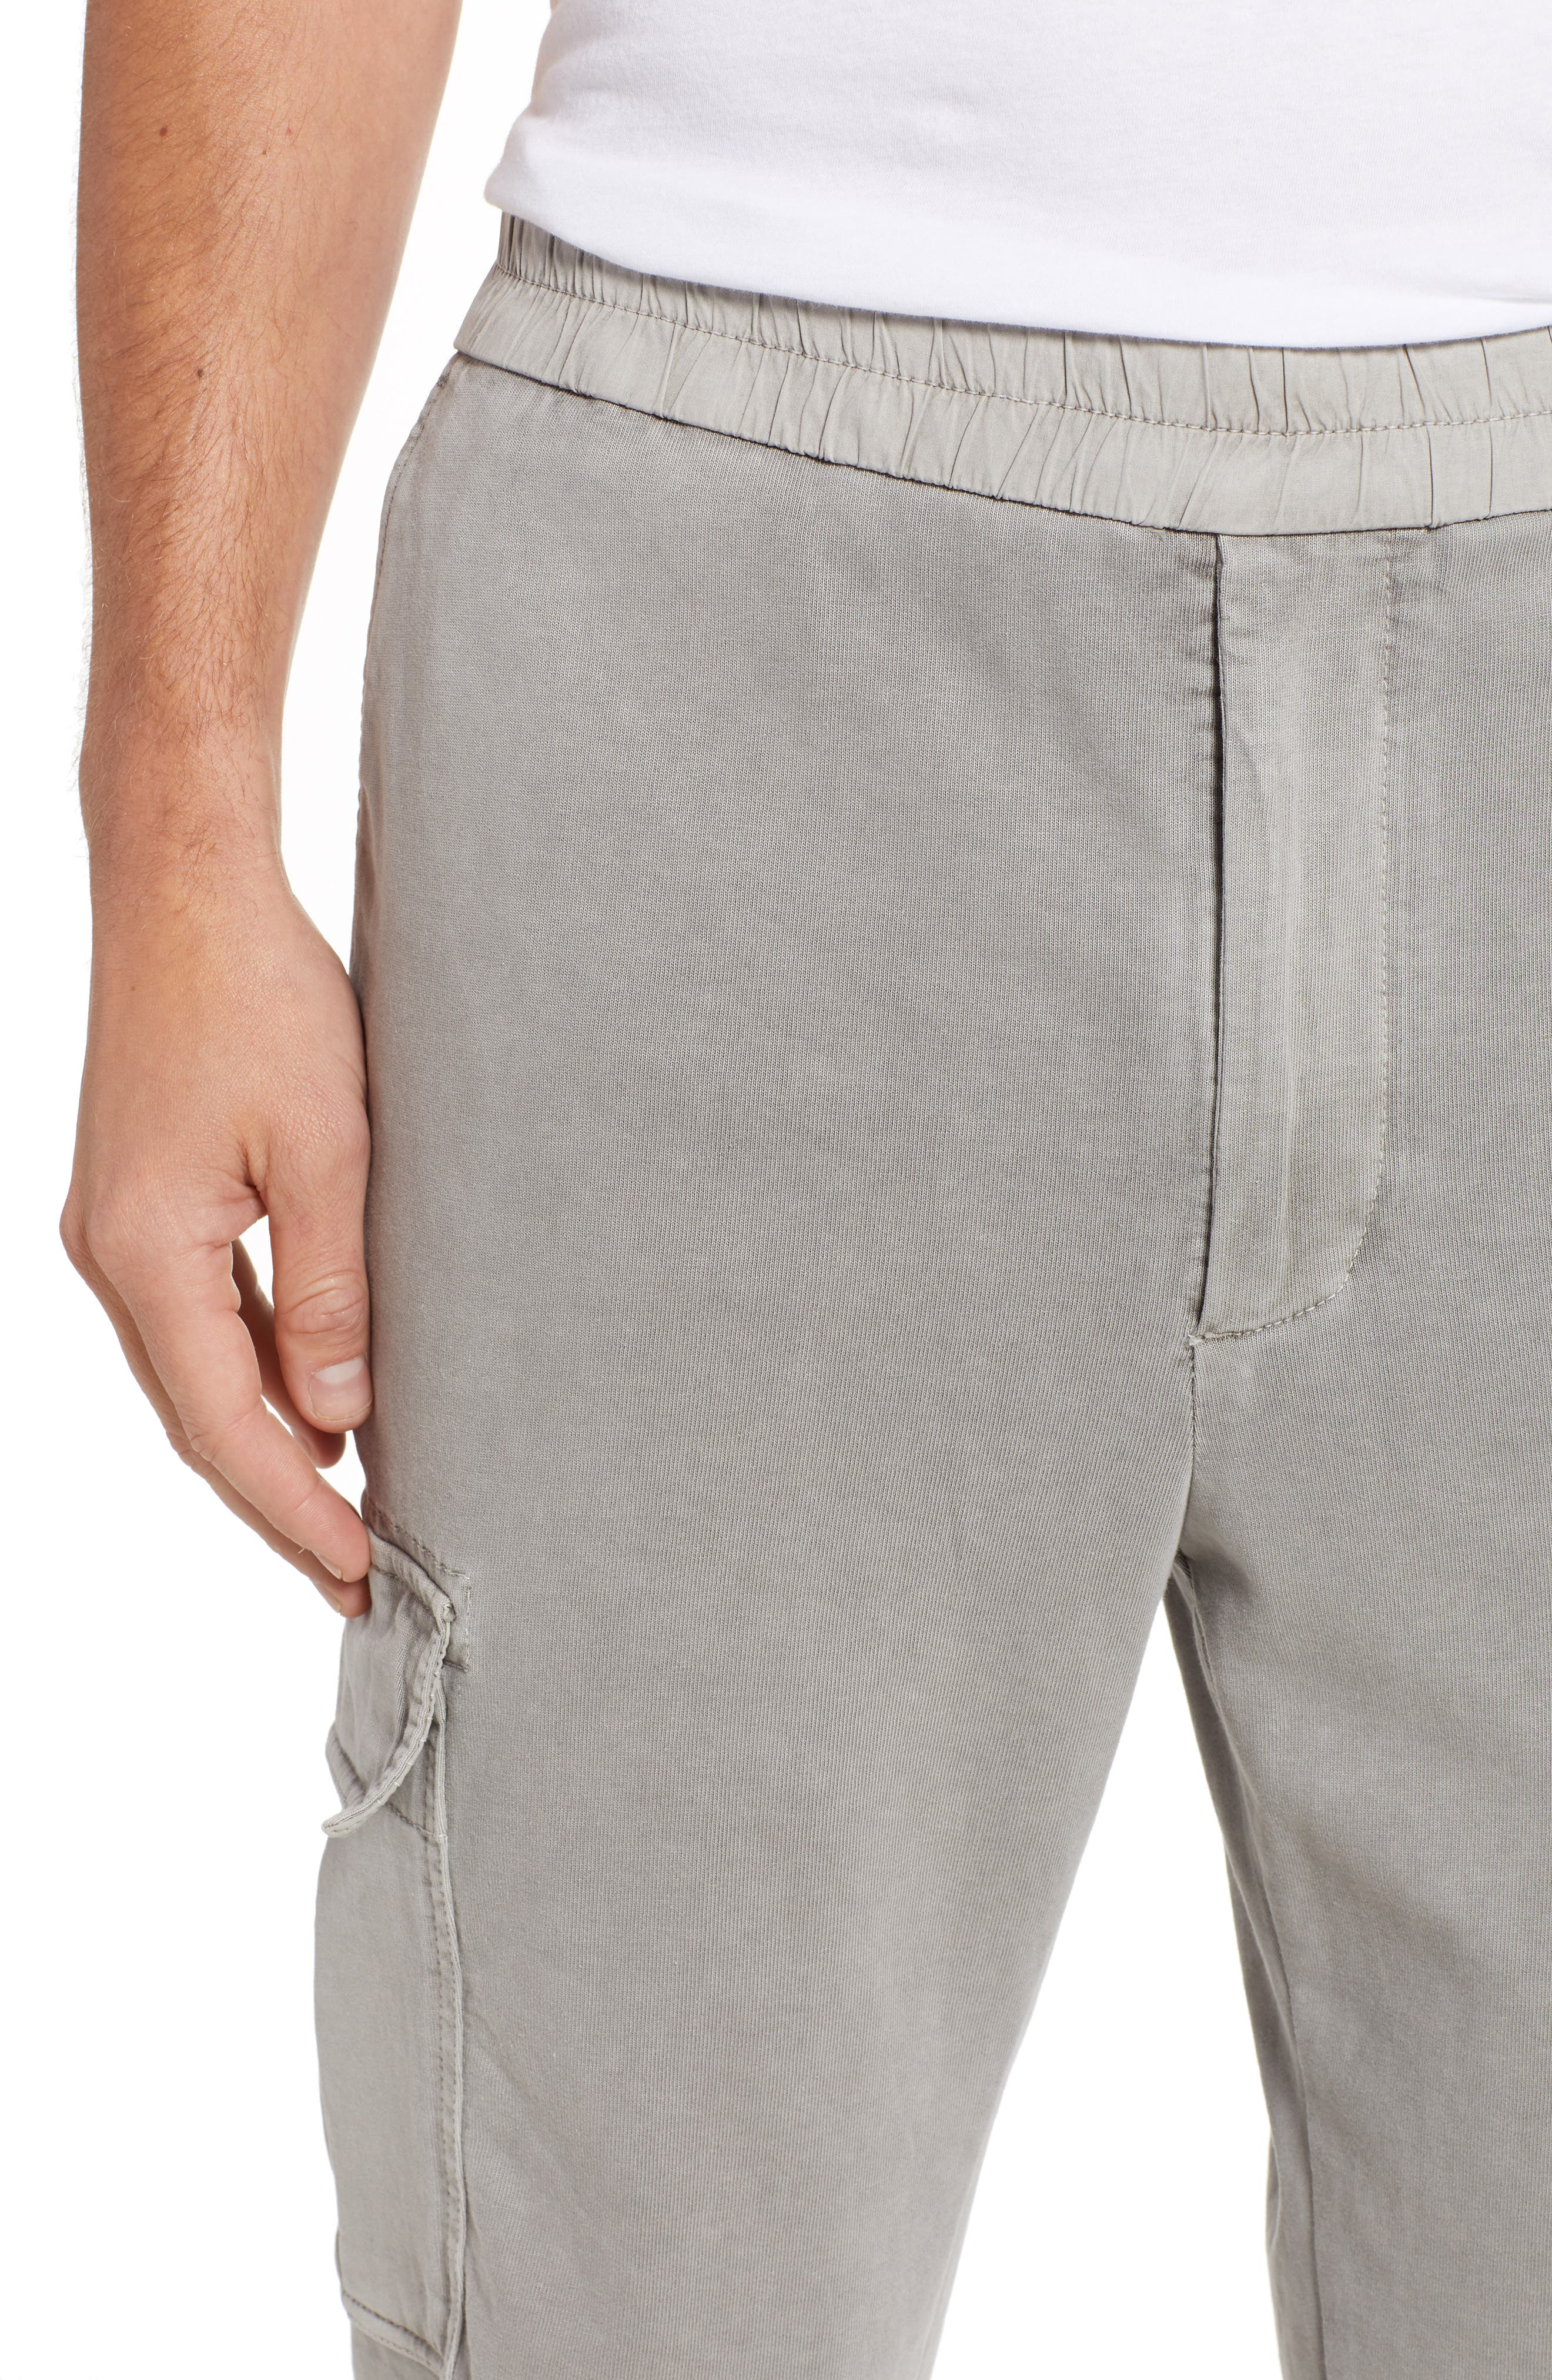 Cotton Jersey Relaxed Fit Cargo Pants,                             Alternate thumbnail 4, color,                             056